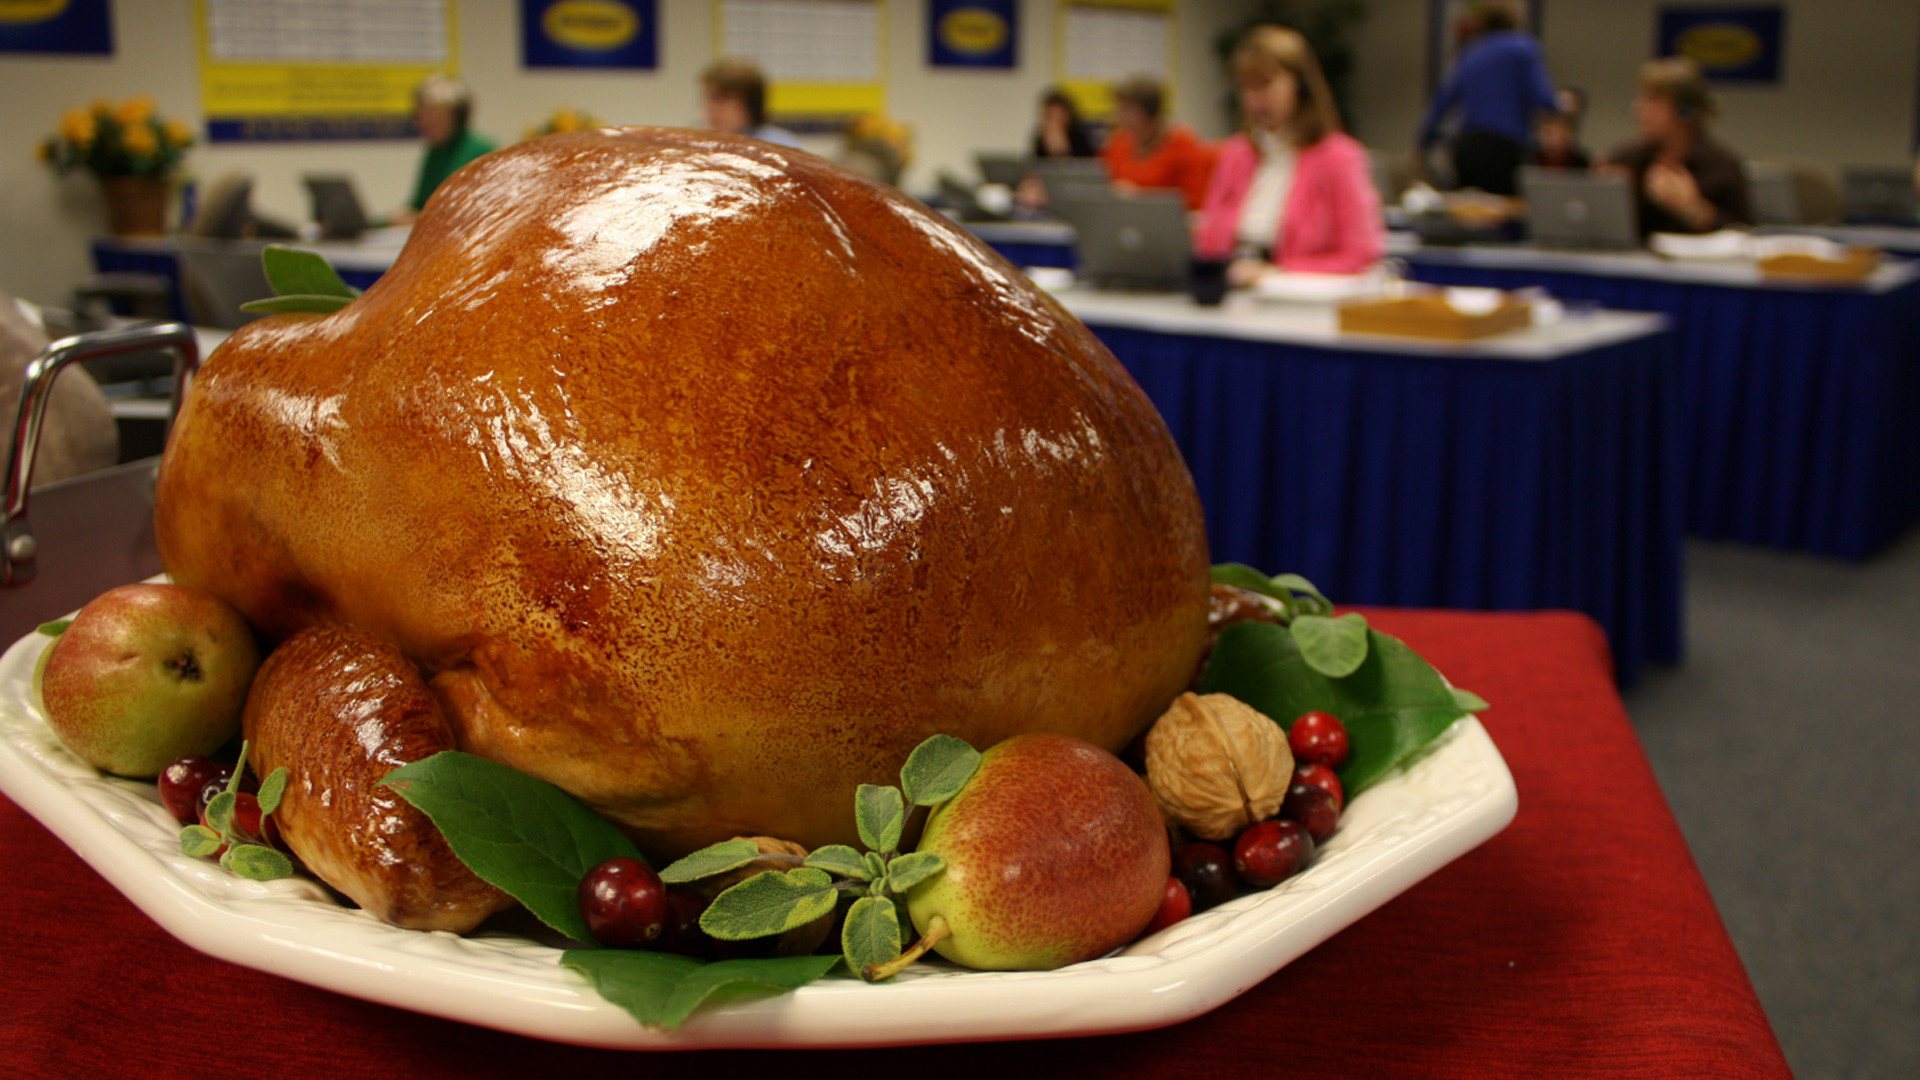 Turkey Shortage For Thanksgiving  Yes There's a Butterball Shortage No You Do Not Need to